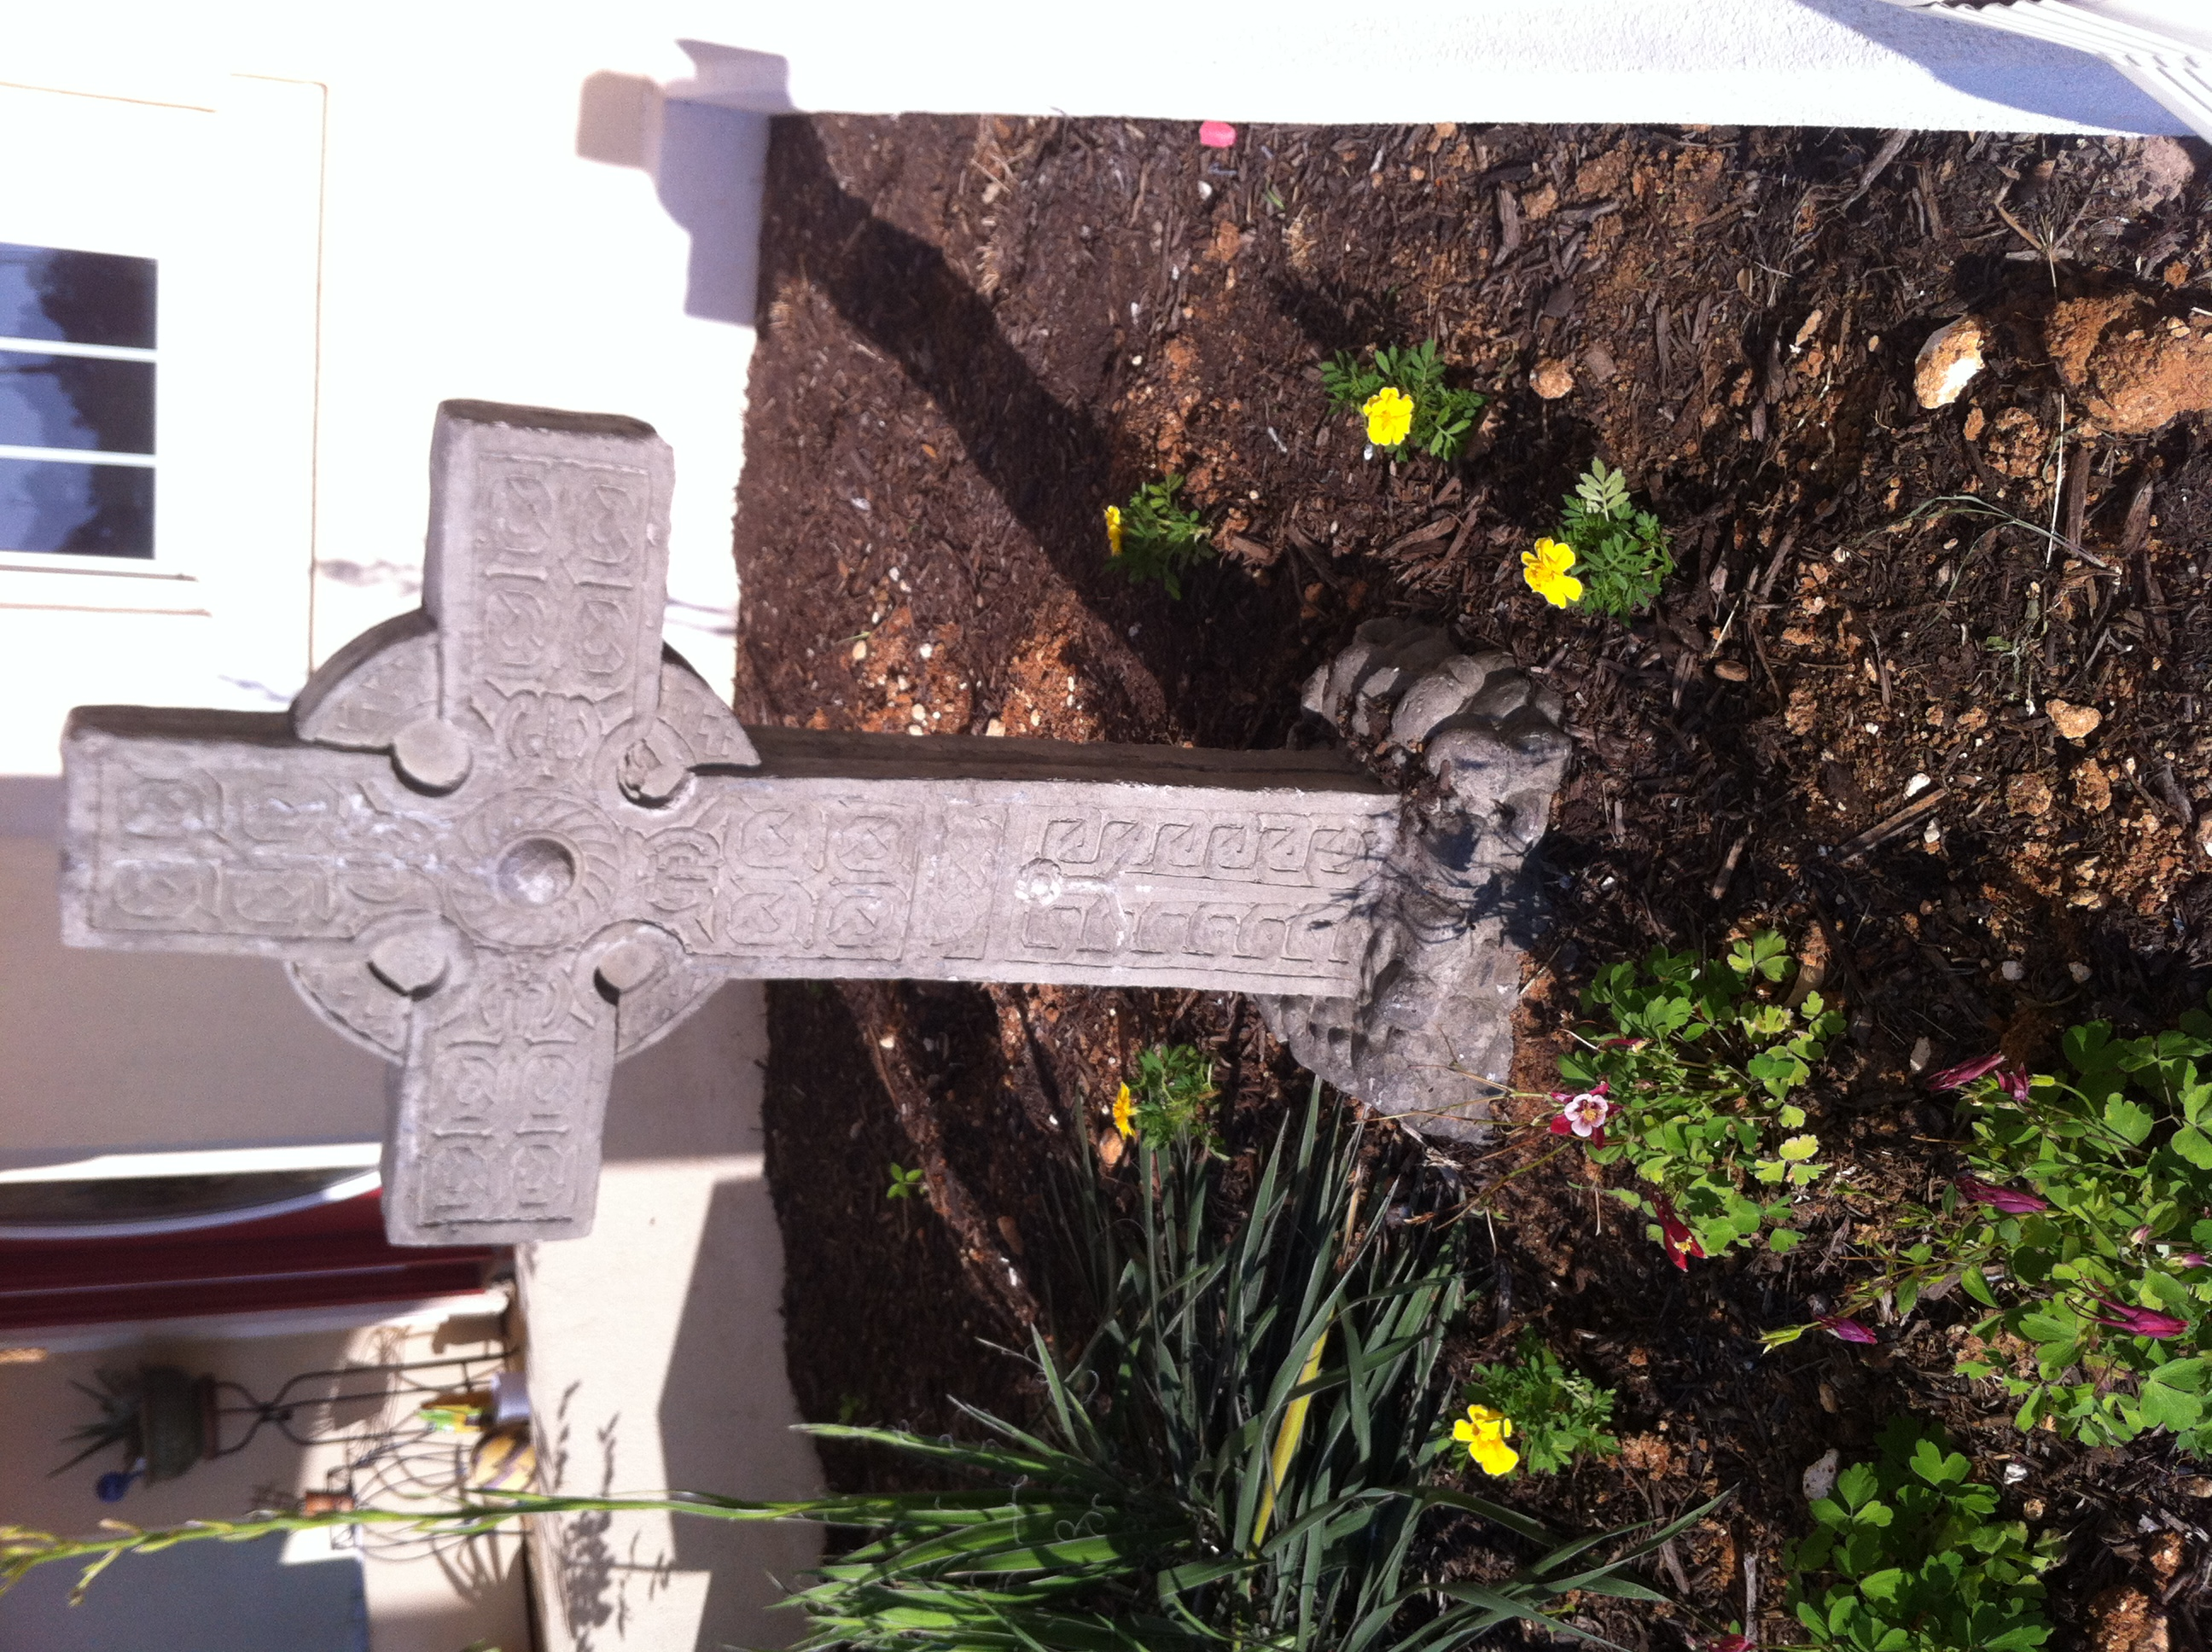 Clara planted Easter flowers around the cross by our front door.